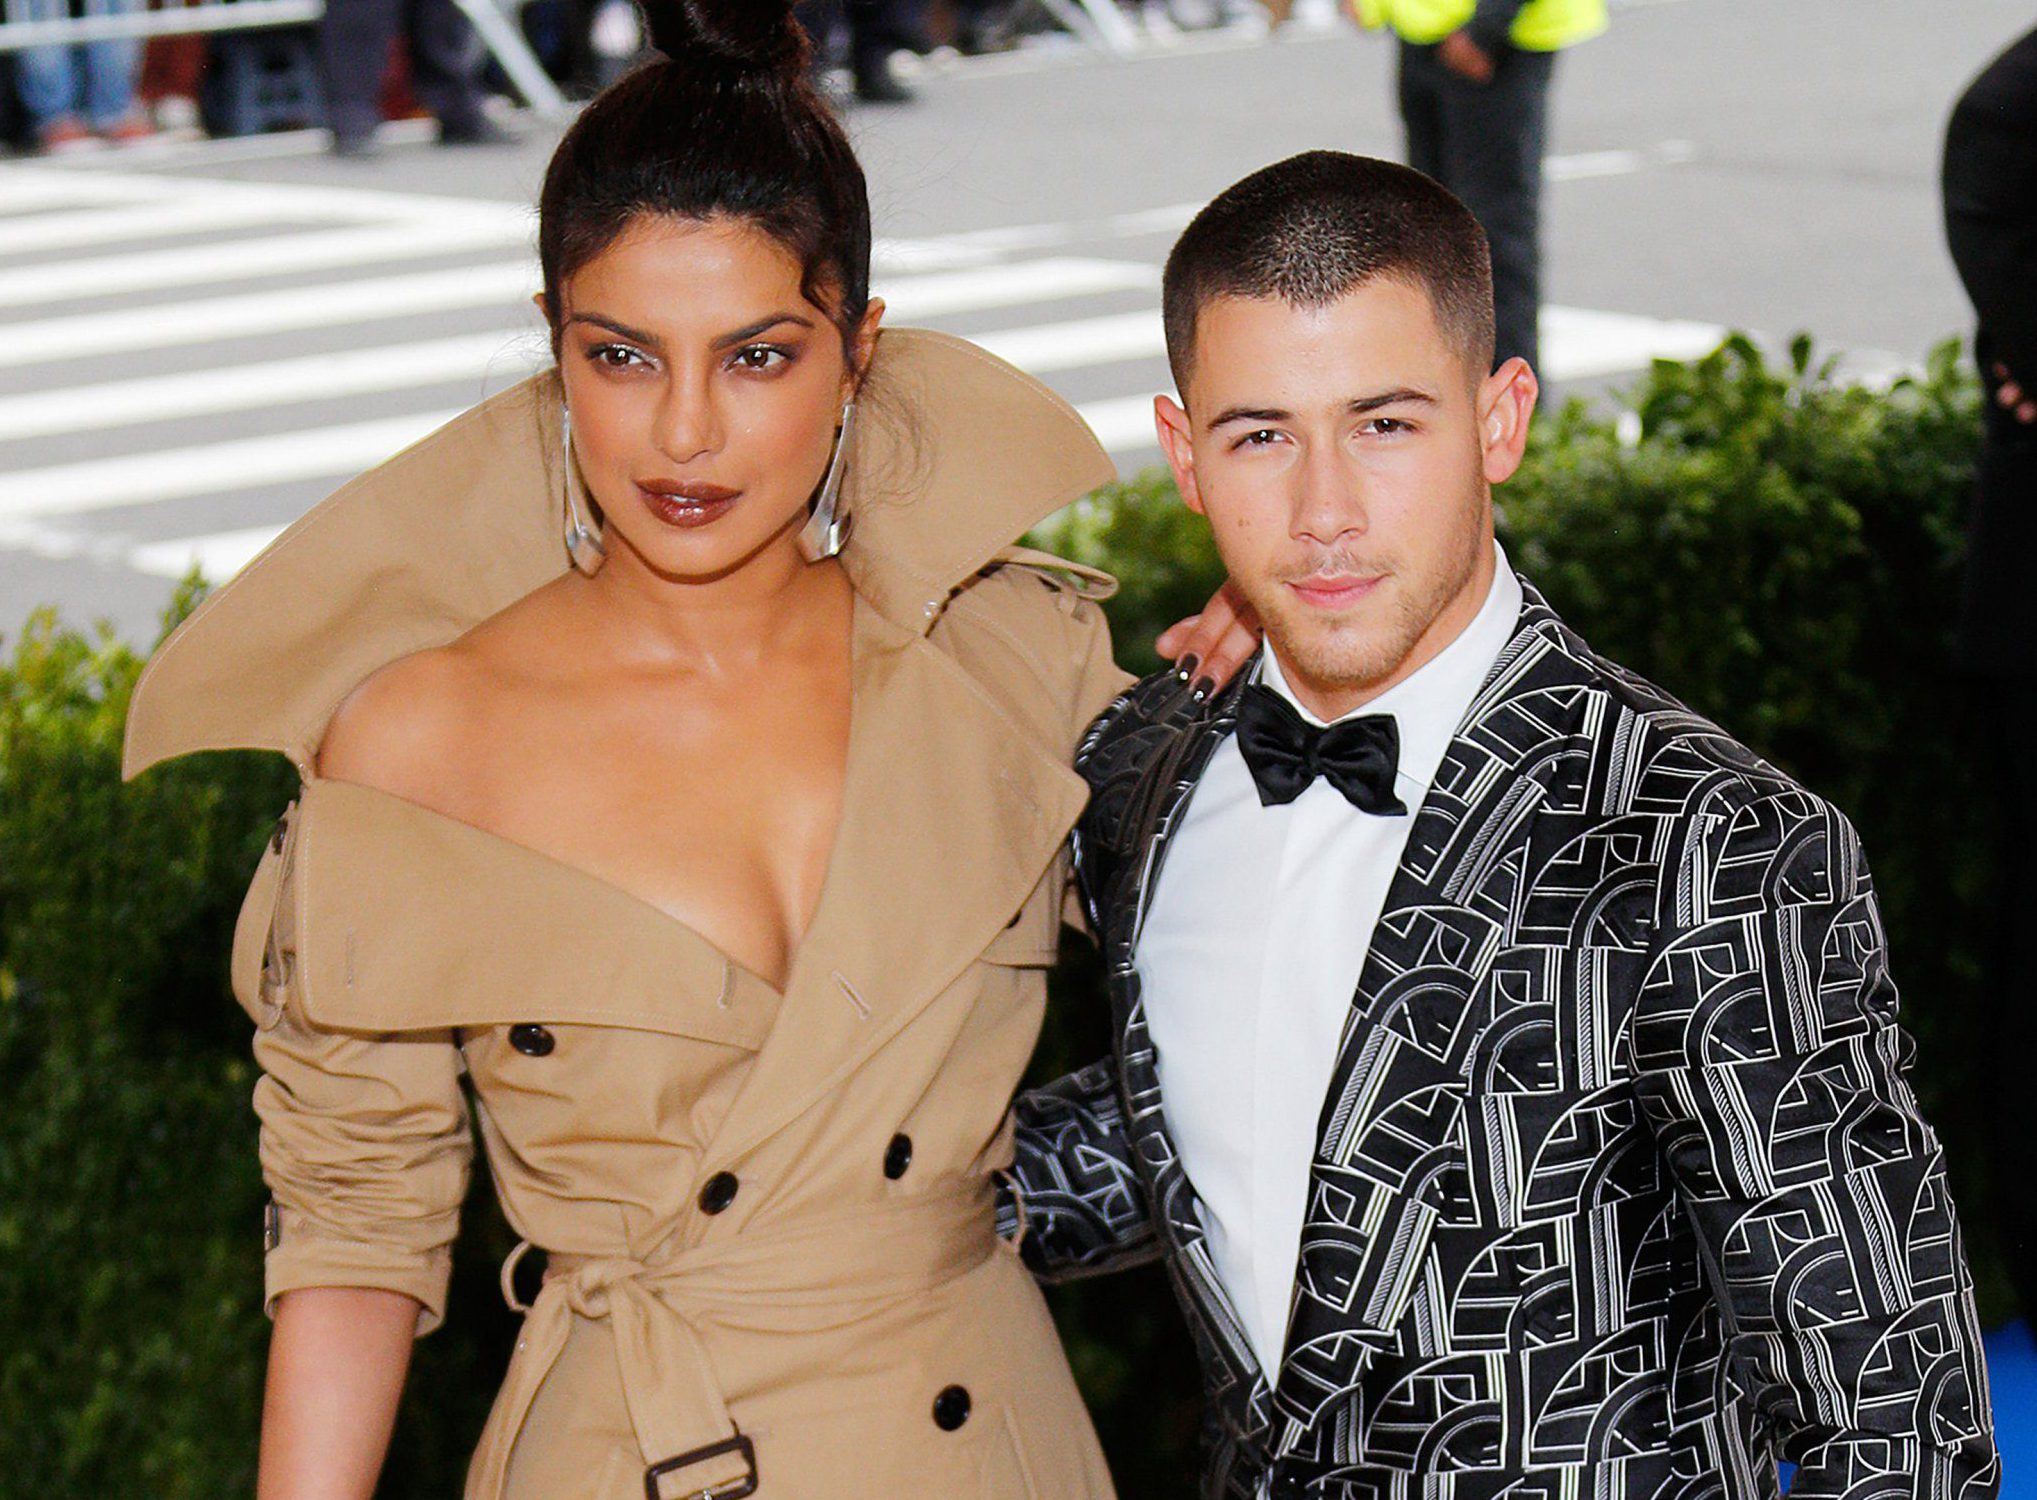 NEW YORK, NY - MAY 01: Priyanka Chopra and Nick Jonas attend 'Rei Kawakubo/Comme des Gar??ons:Art of the In-Between' Costume Institute Gala at Metropolitan Museum of Art on May 1, 2017 in New York City. (Photo by Jackson Lee/FilmMagic)